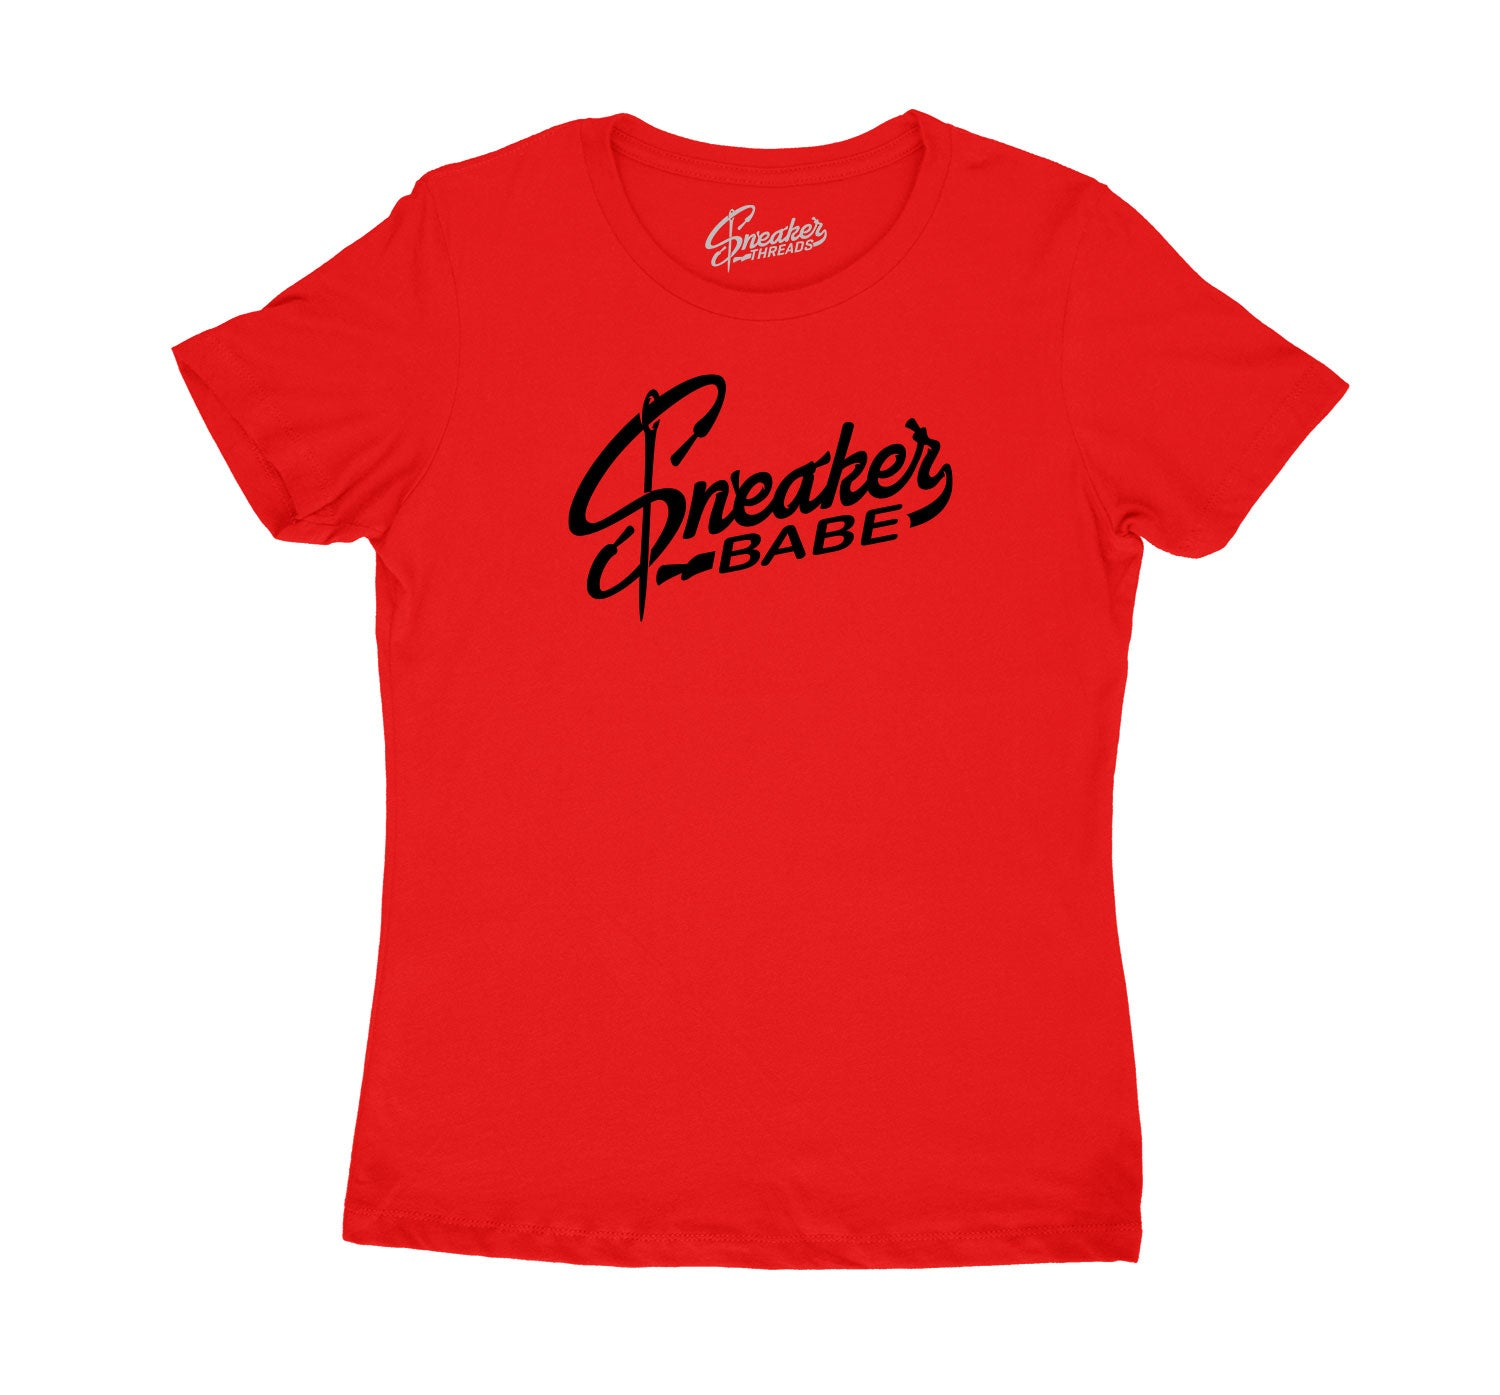 Womens - Red Cement 3 Sneaker Babe Logo Shirt